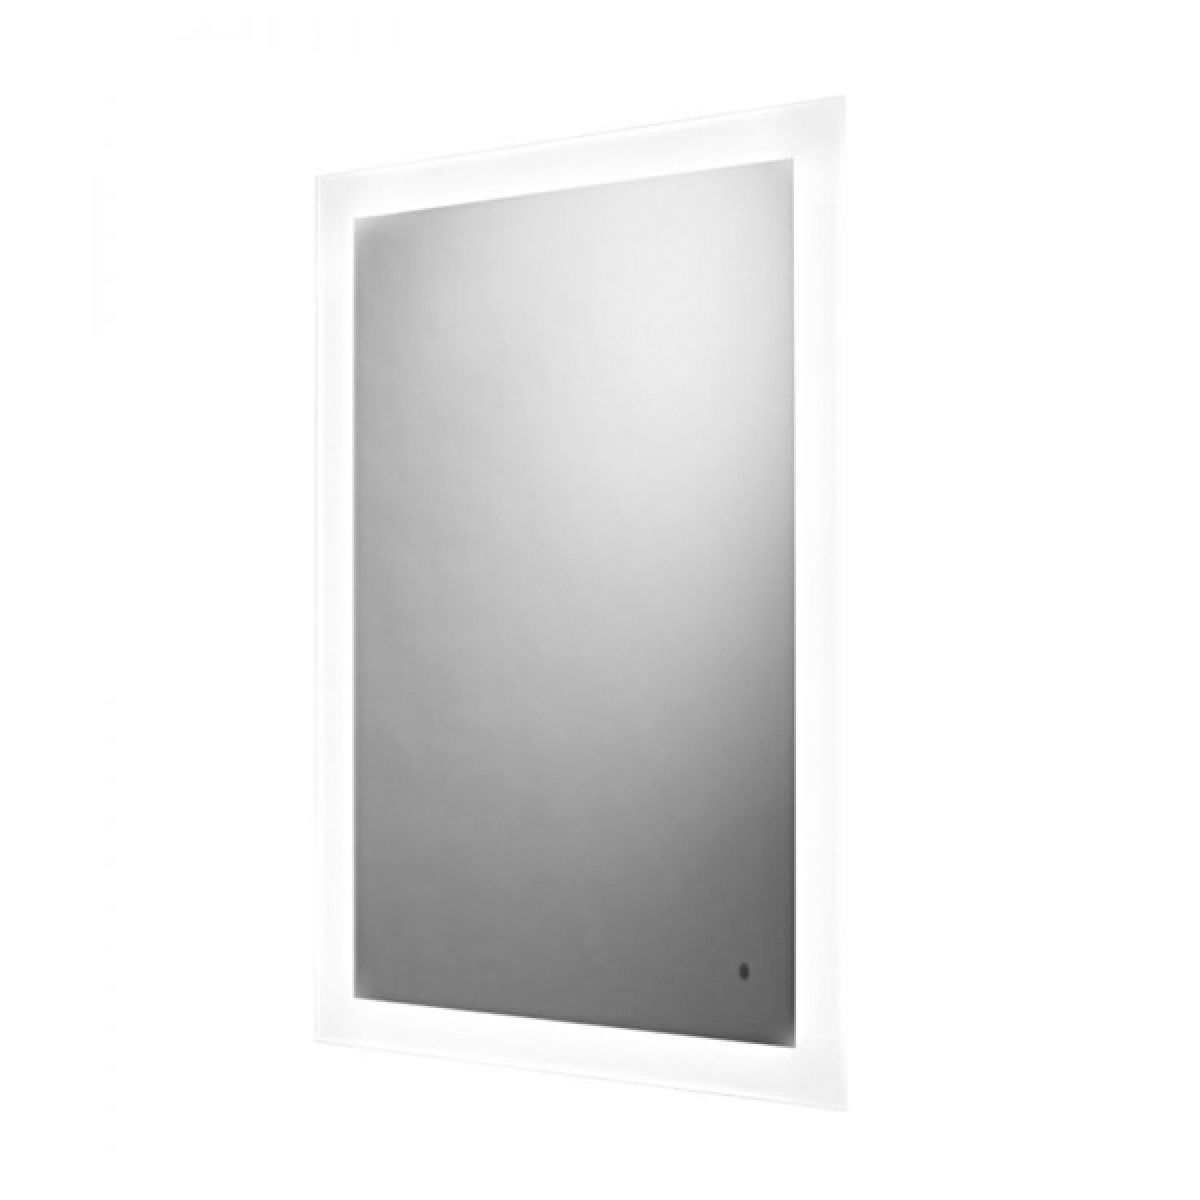 Tavistock Appear LED Backlit Illuminated Mirror